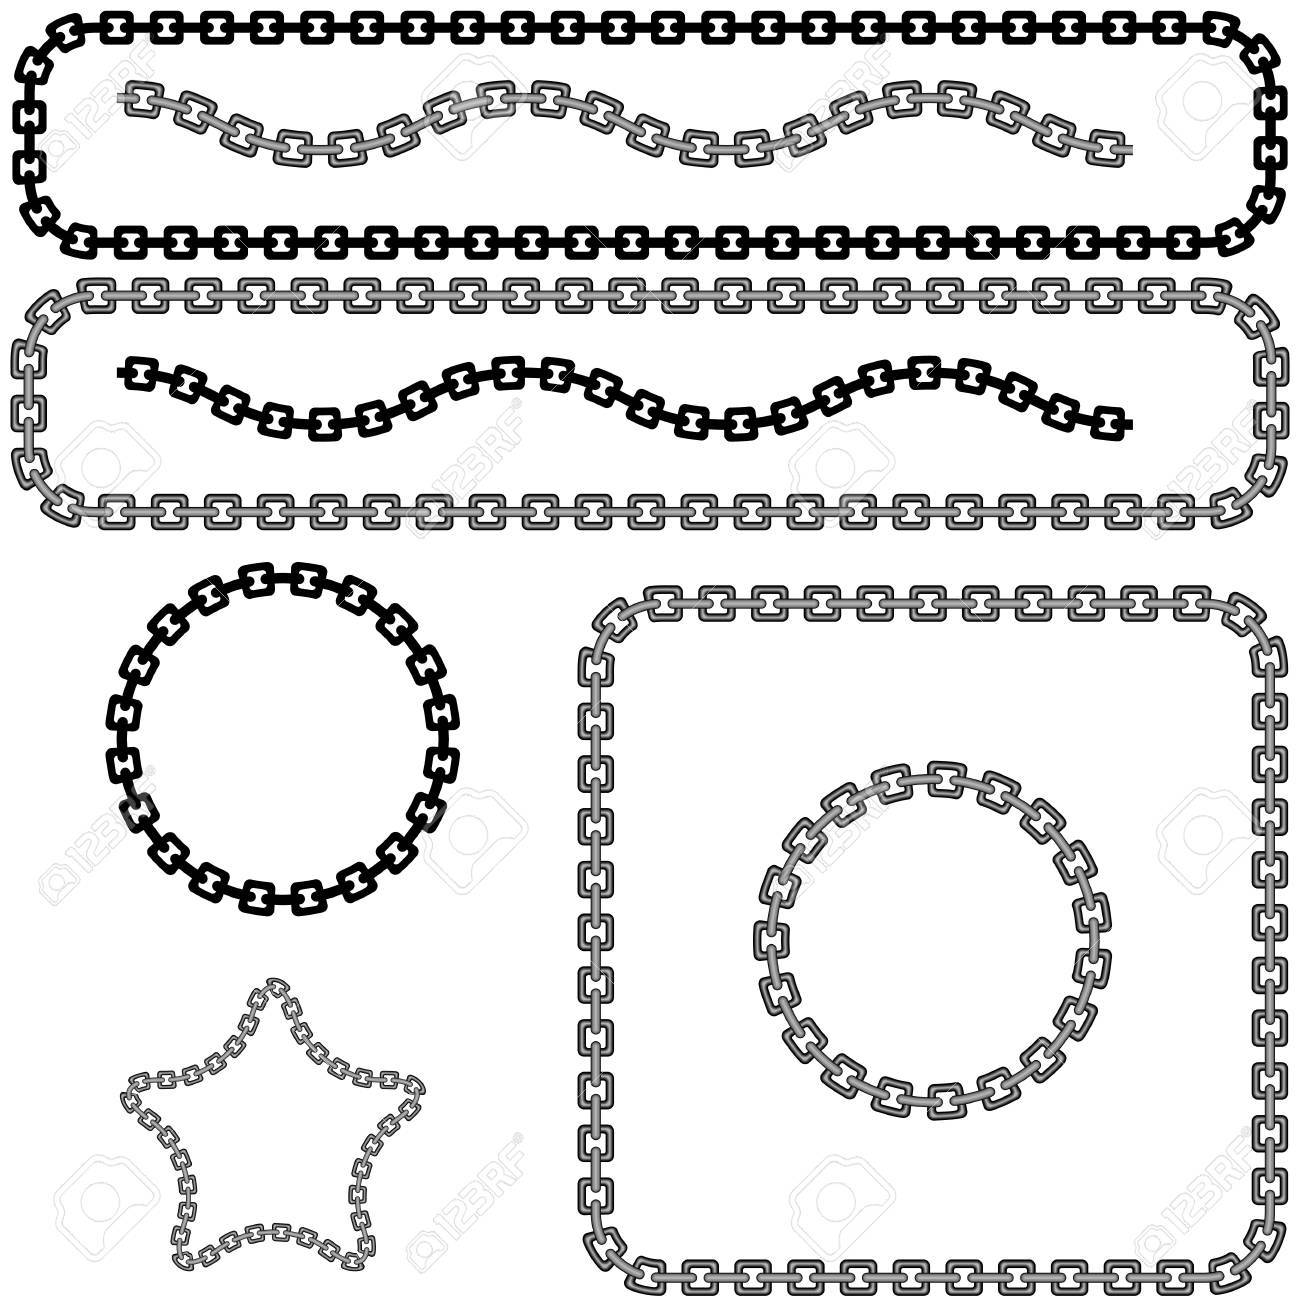 An image of a chan link design element set. Stock Vector - 9518143